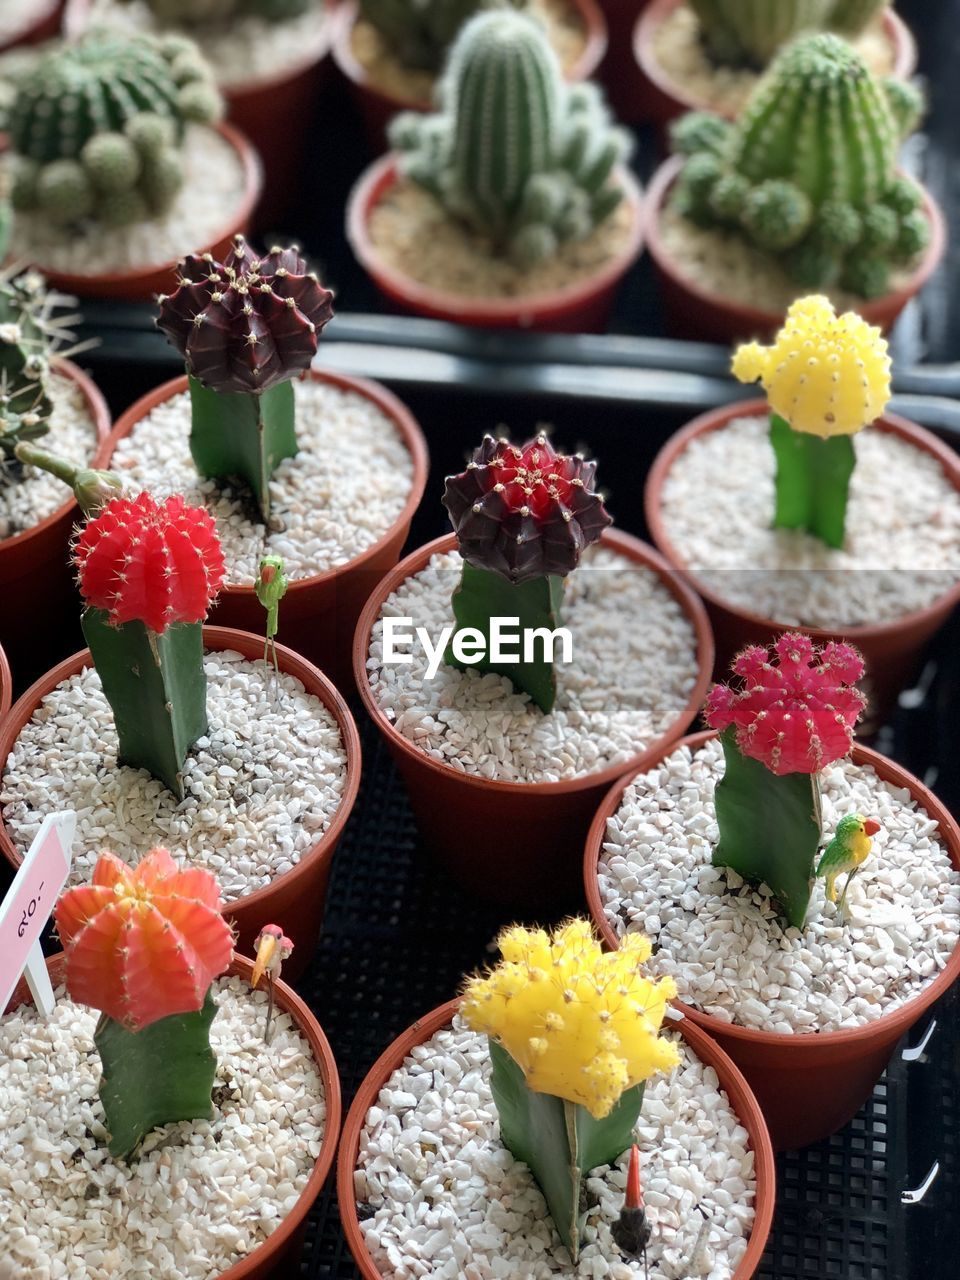 succulent plant, freshness, no people, cactus, close-up, choice, plant, potted plant, still life, variation, flower, indoors, day, high angle view, nature, beauty in nature, growth, flowering plant, green color, food and drink